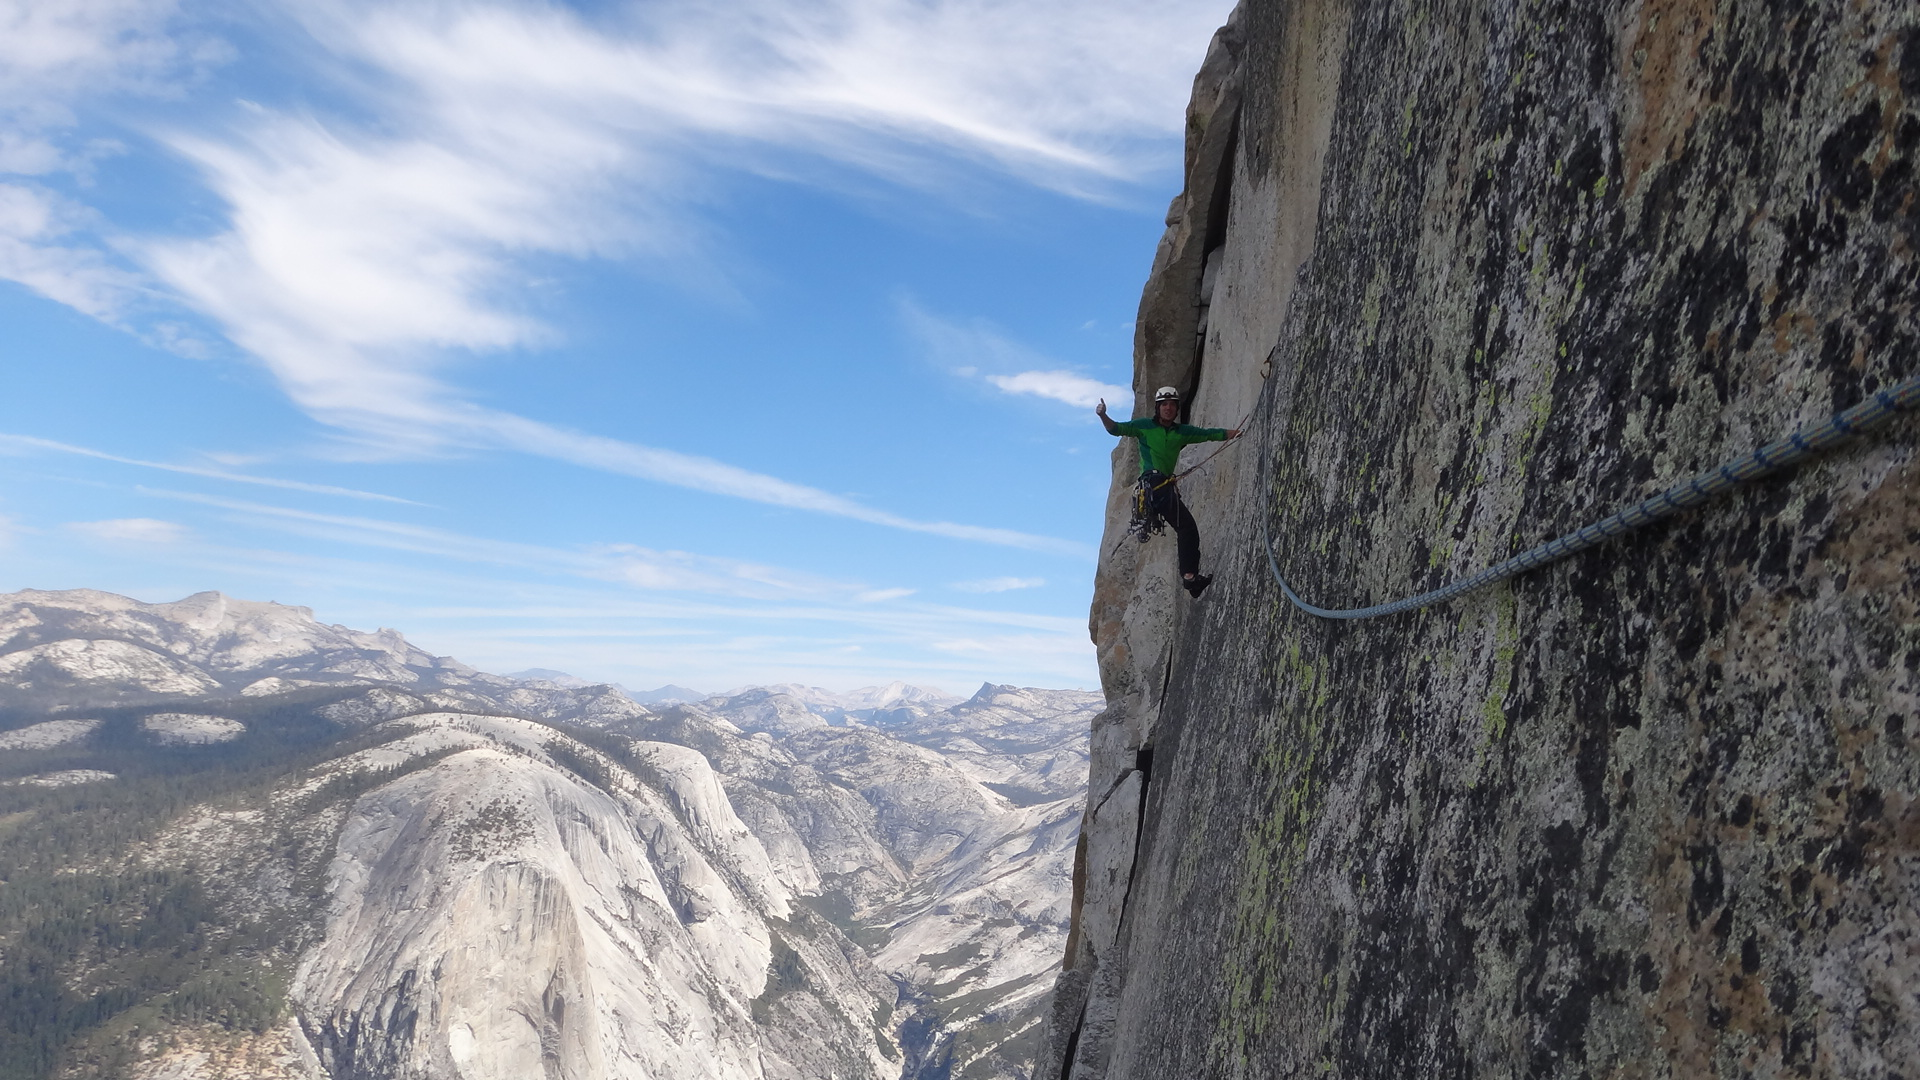 On the Thank God ledge, NW face Half Dome, Yosemite